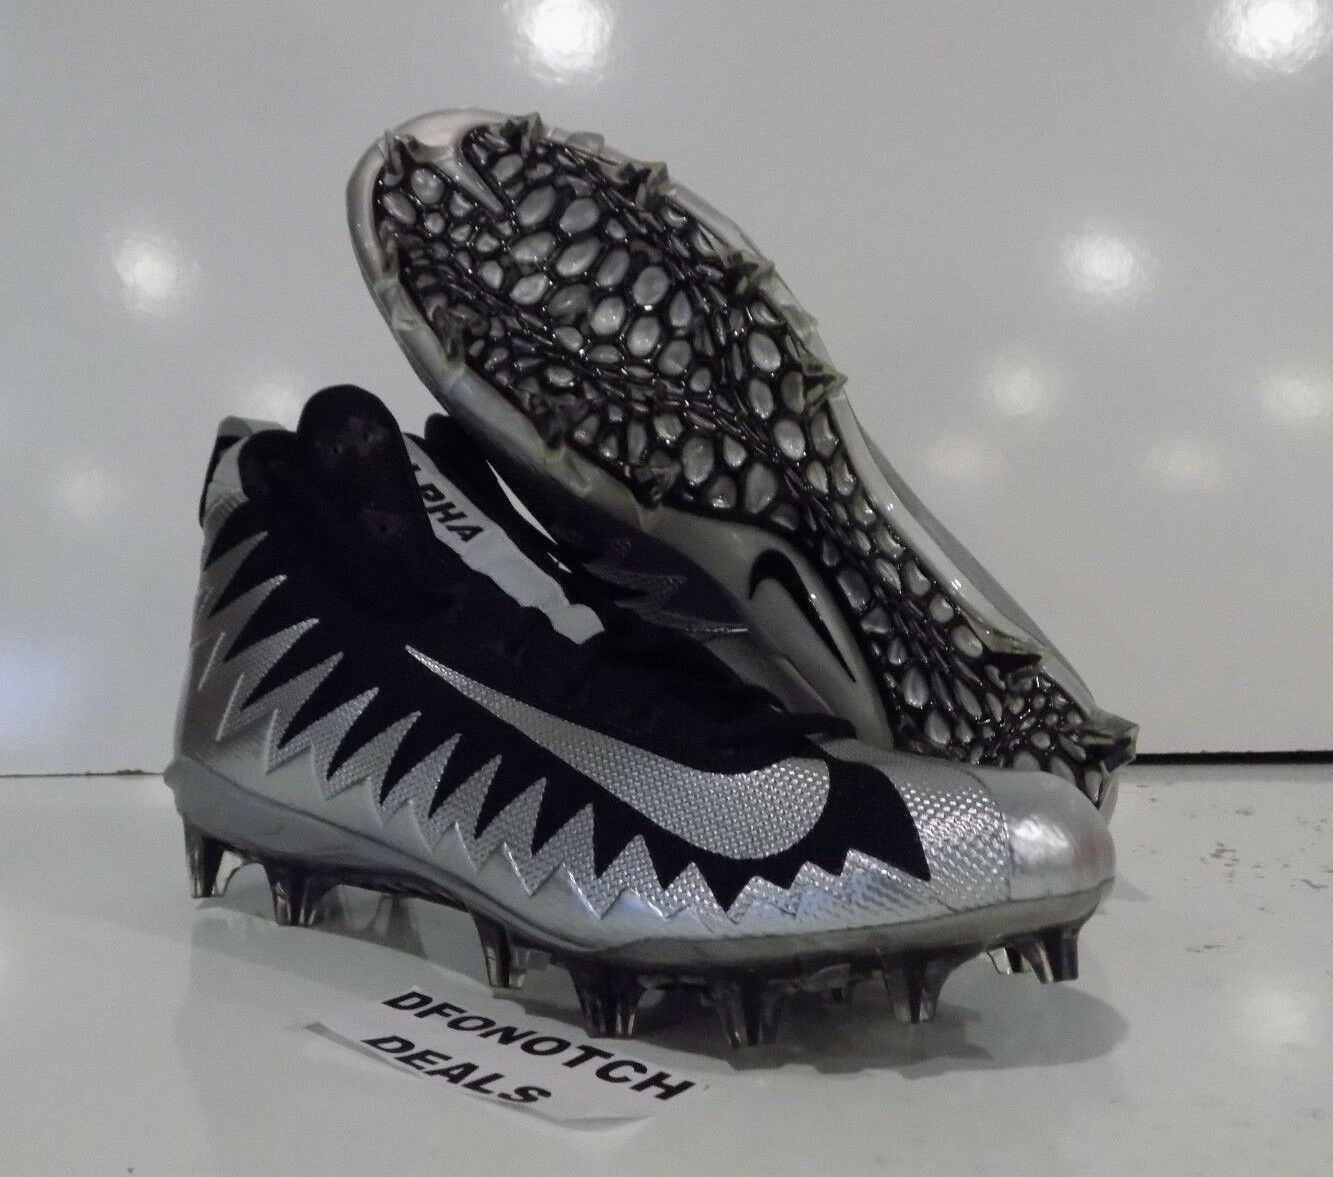 Nike Alpha Menace Pro Mid Football Cleats Sz 15 Silver Black NEW 871451 001